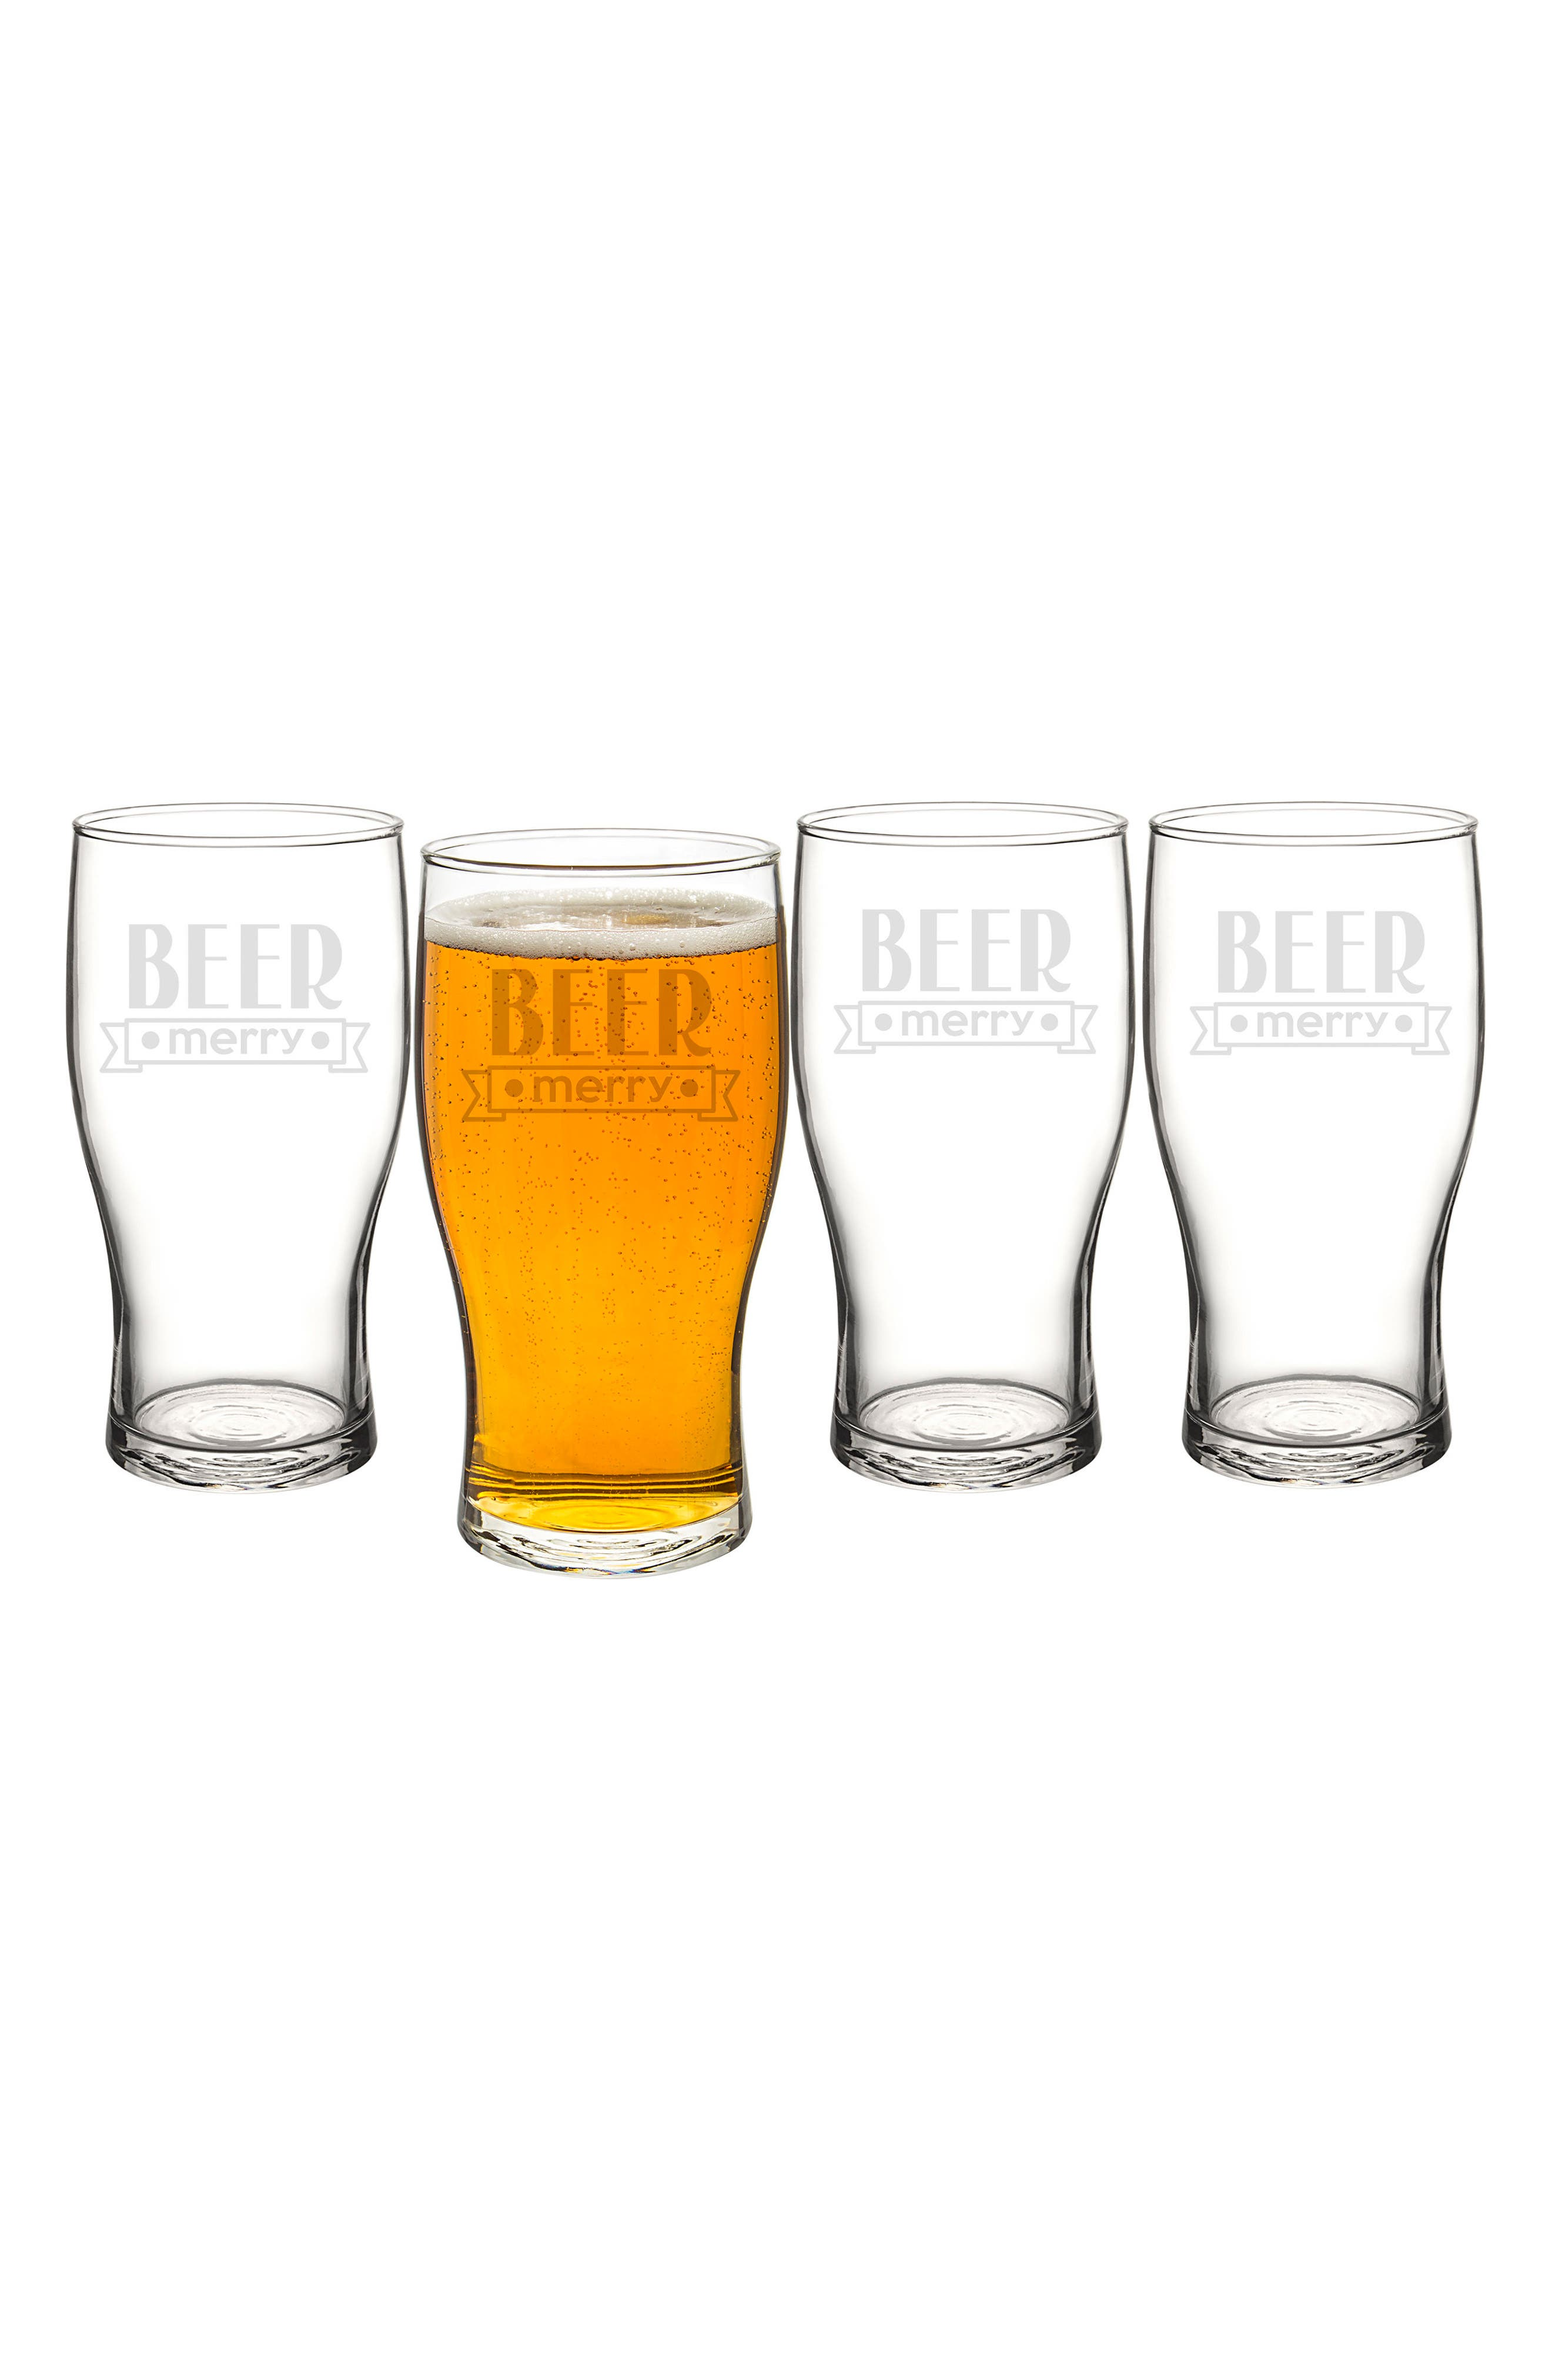 Beer Merry Set of 4 Pilsner Glasses,                         Main,                         color, Clear